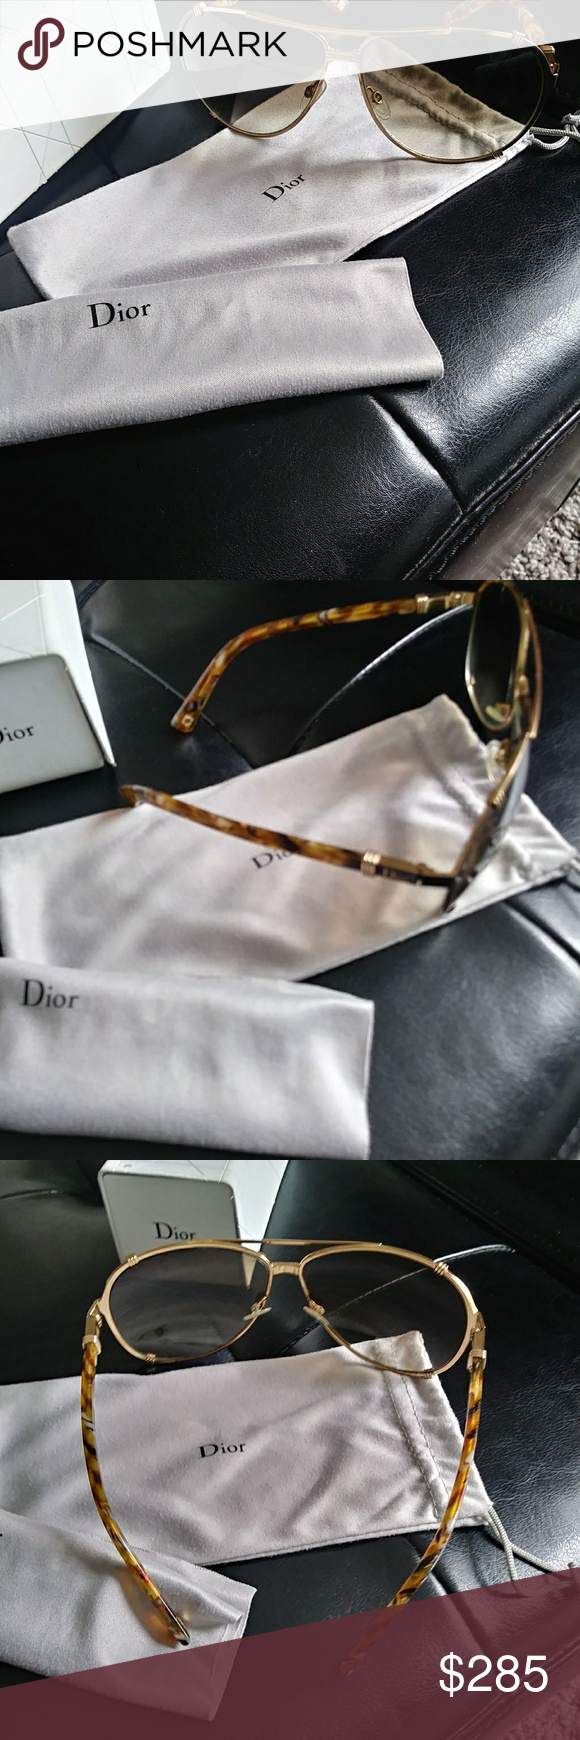 9415c5caeb7d Spotted while shopping on Poshmark  AUTHENTIC Dior!  poshmark  fashion   shopping  style  Dior  Accessories